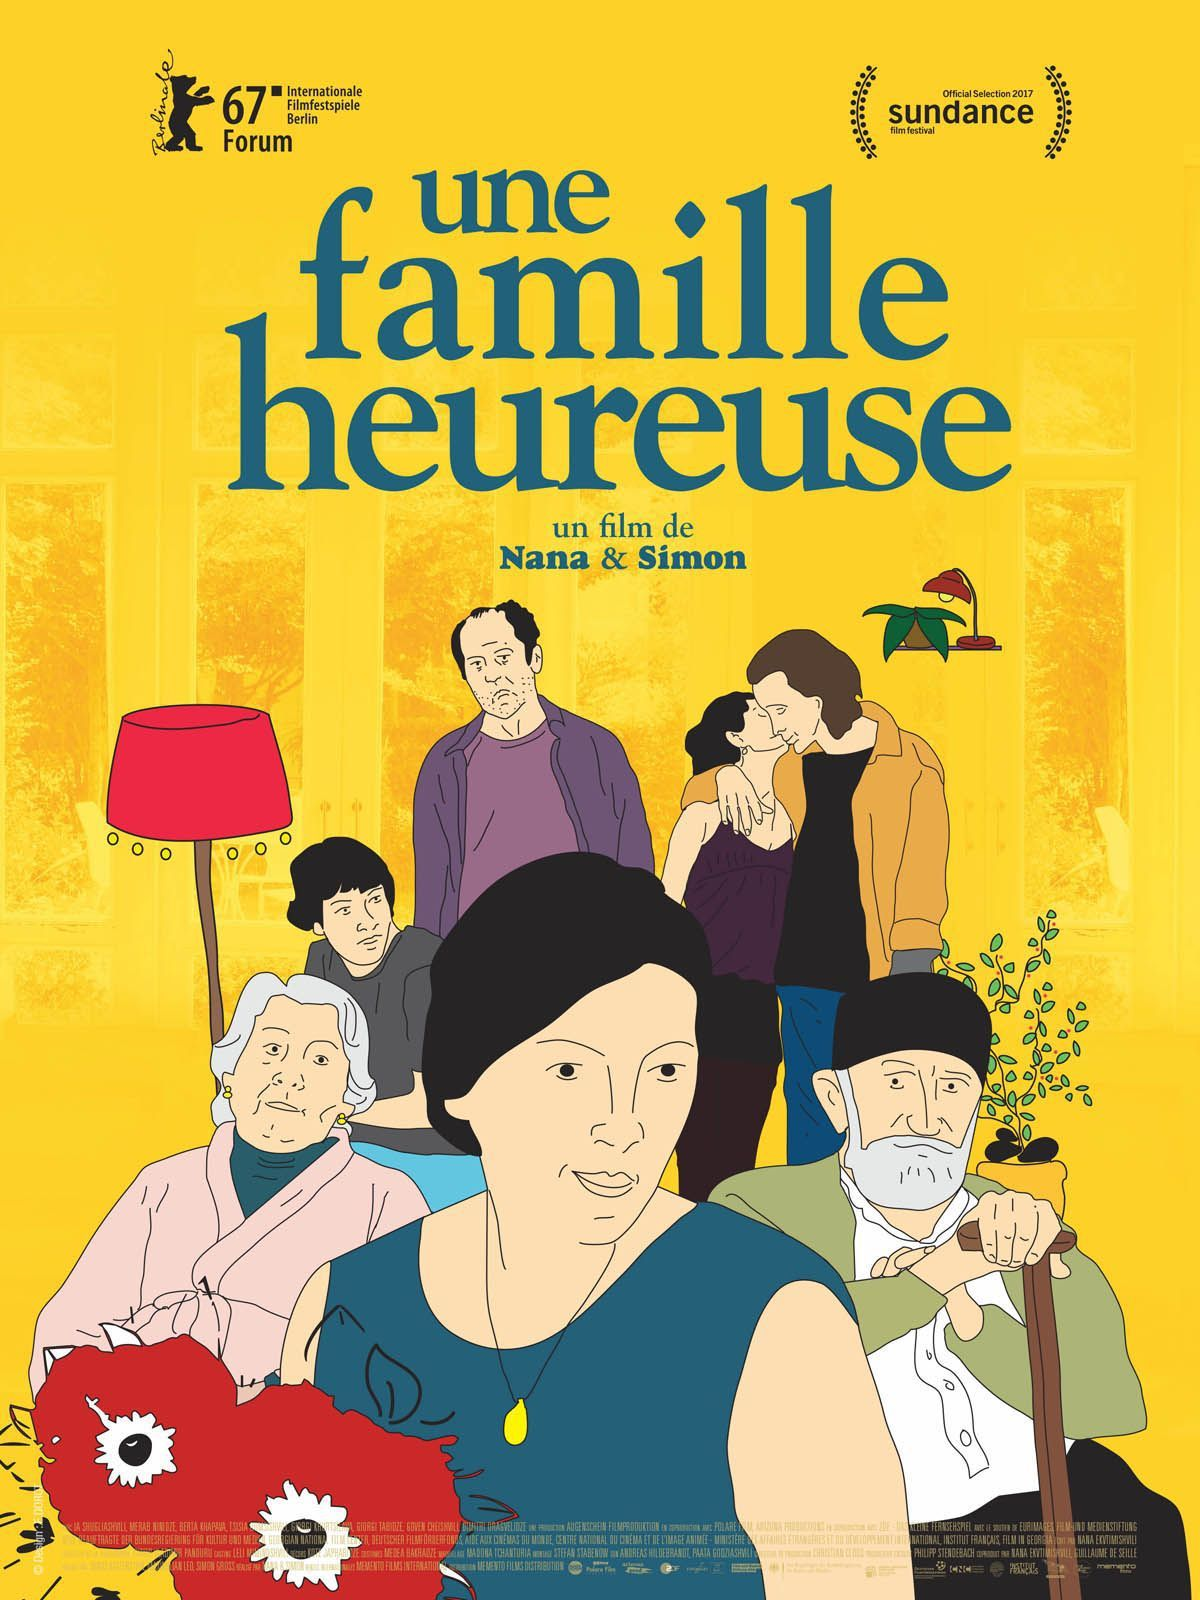 Une Famille heureuse - Film (2017) streaming VF gratuit complet